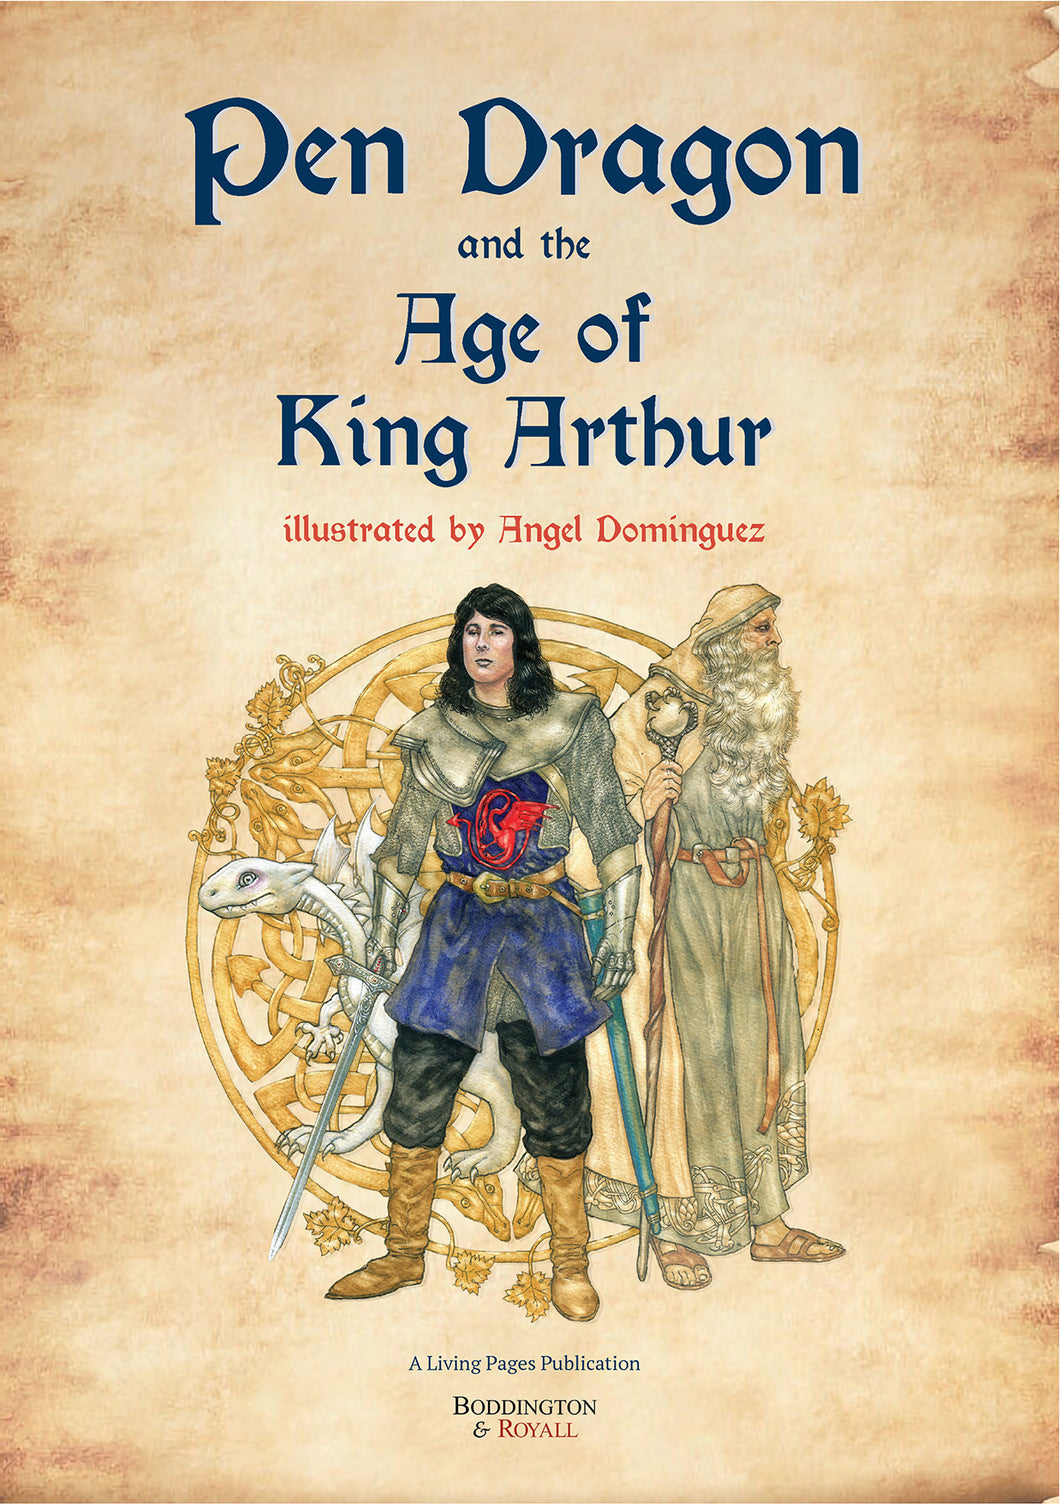 Pen Dragon and the Age of King Arthur